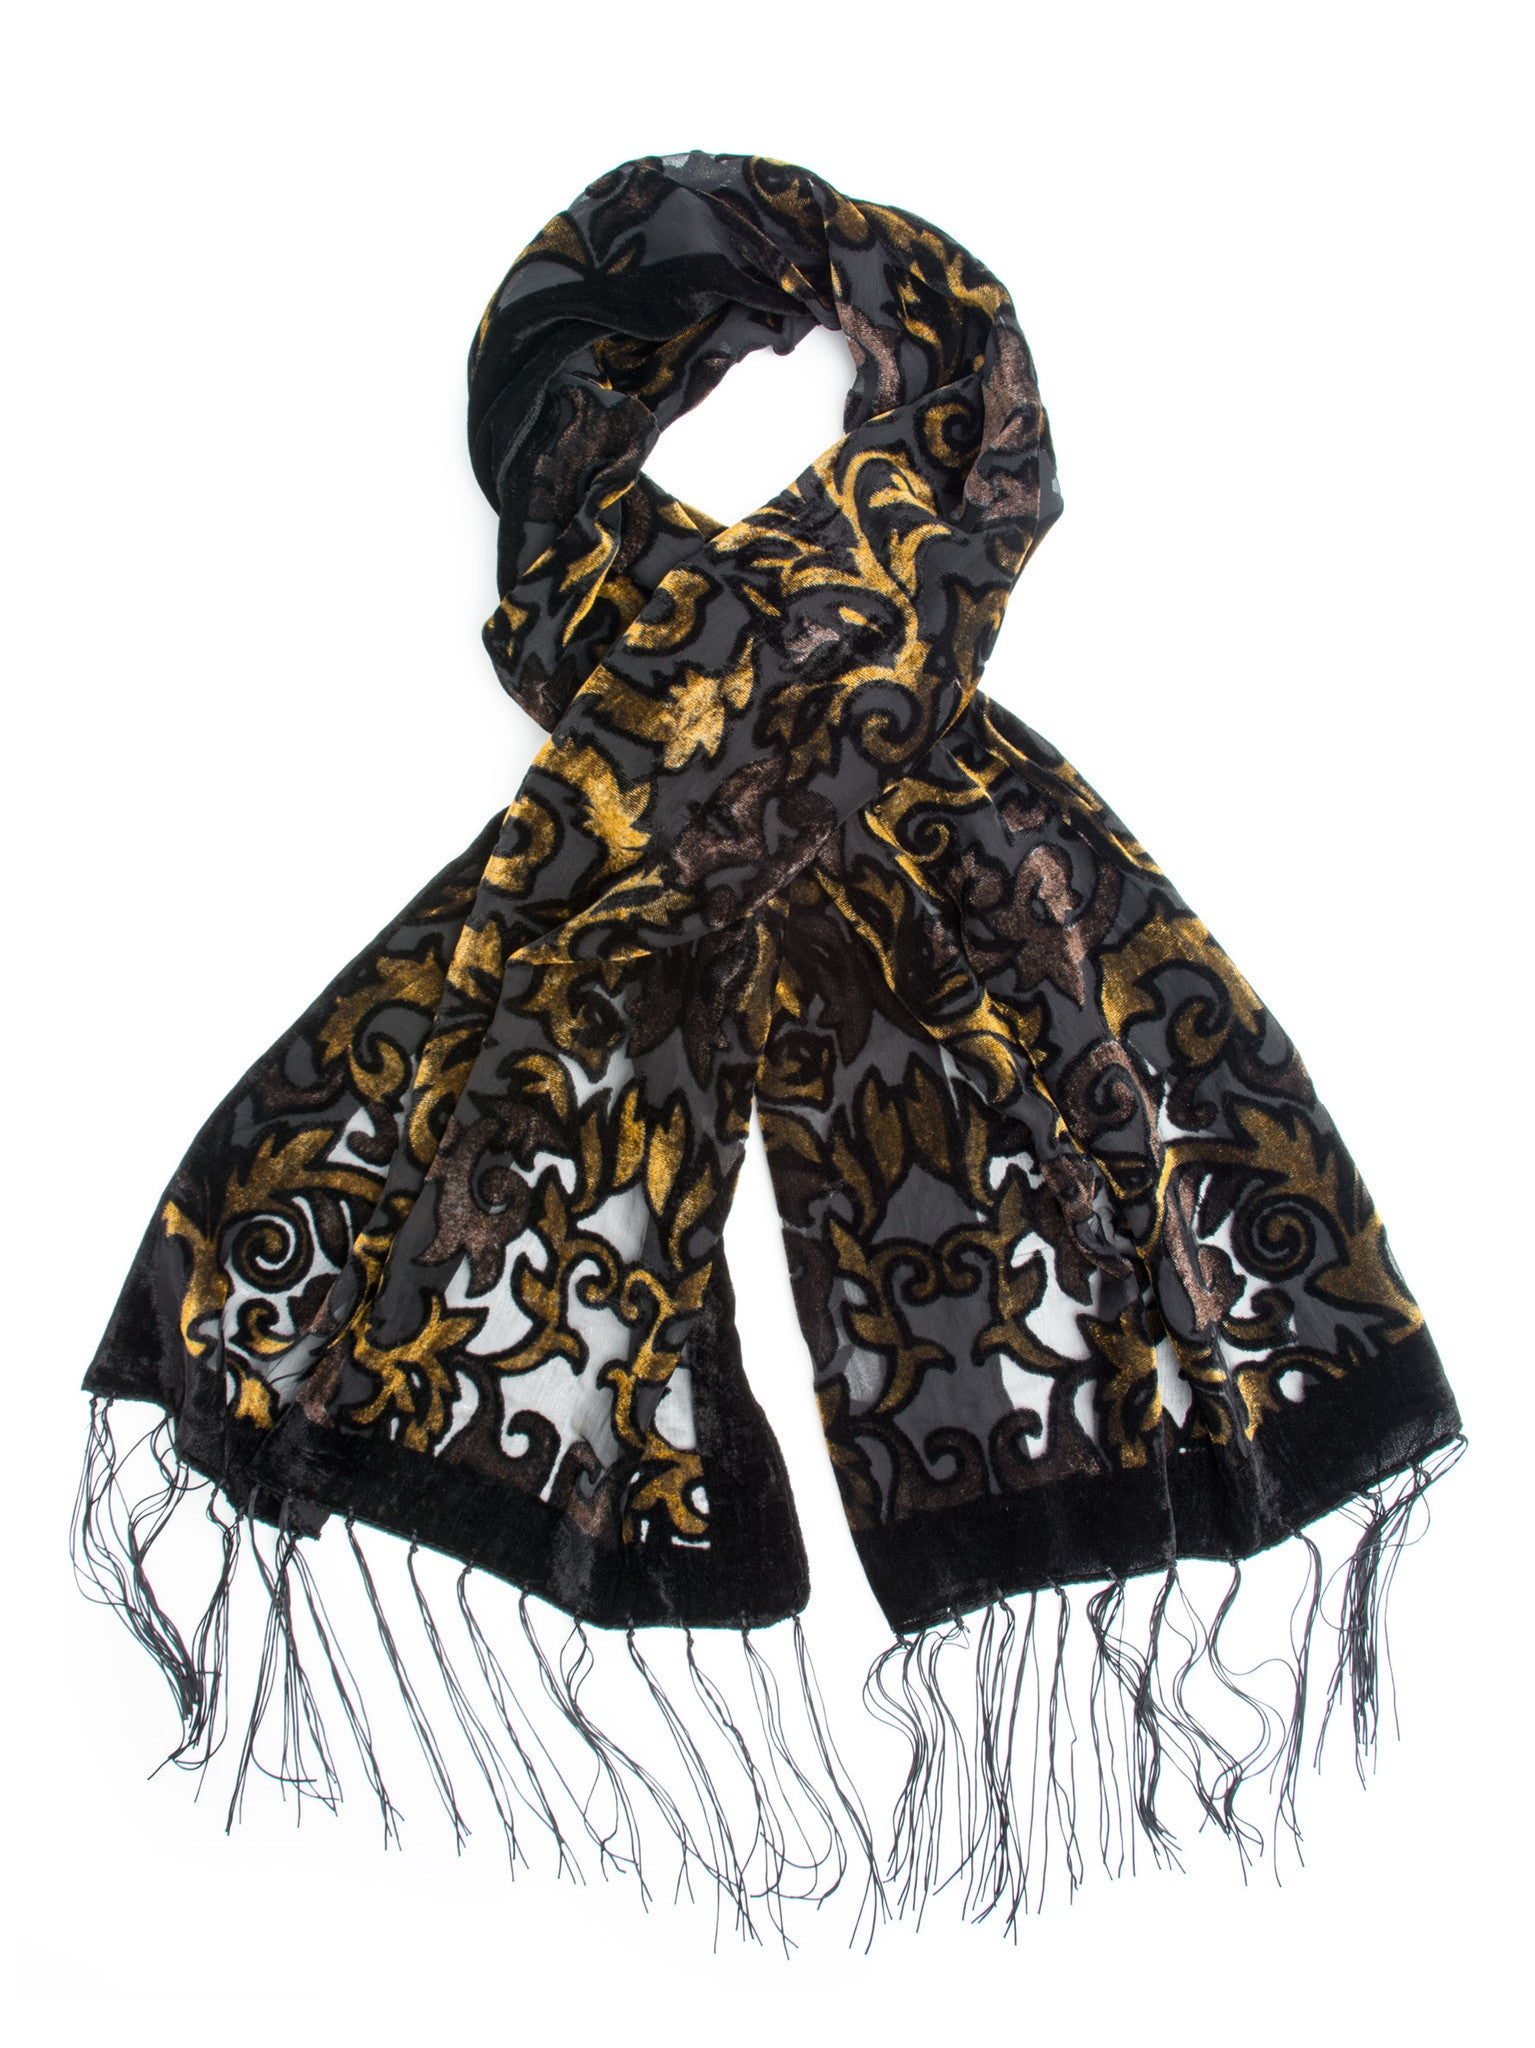 Scarves - Gia Scarf - Silk Brocade Print Velvet Burnout Scarf with Fringe Ends -() Bohomonde  - 7